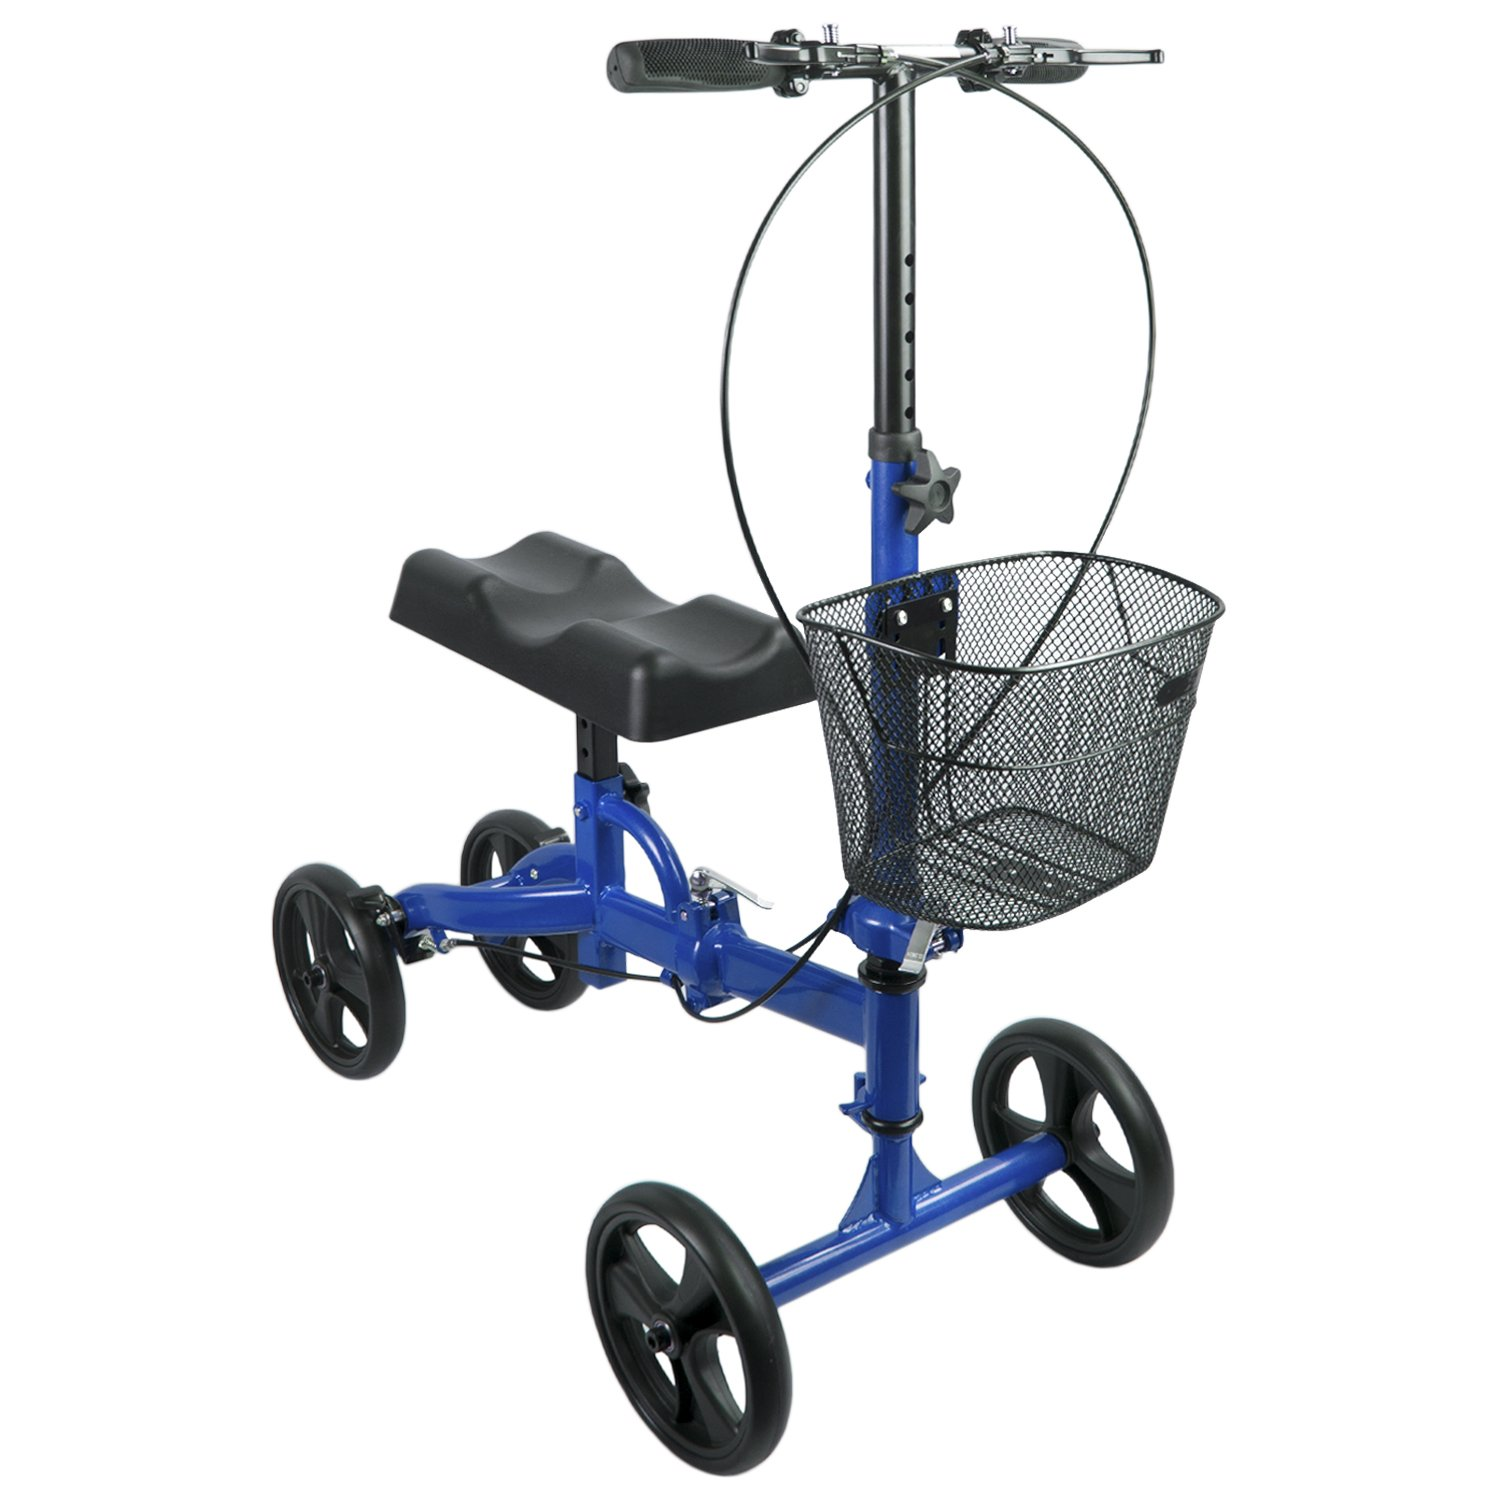 Elevens Steerable Knee Walker with Lockable Brake, Medical Knee Scooter Alternative to Crutches for Broken Leg and Foot Injuries